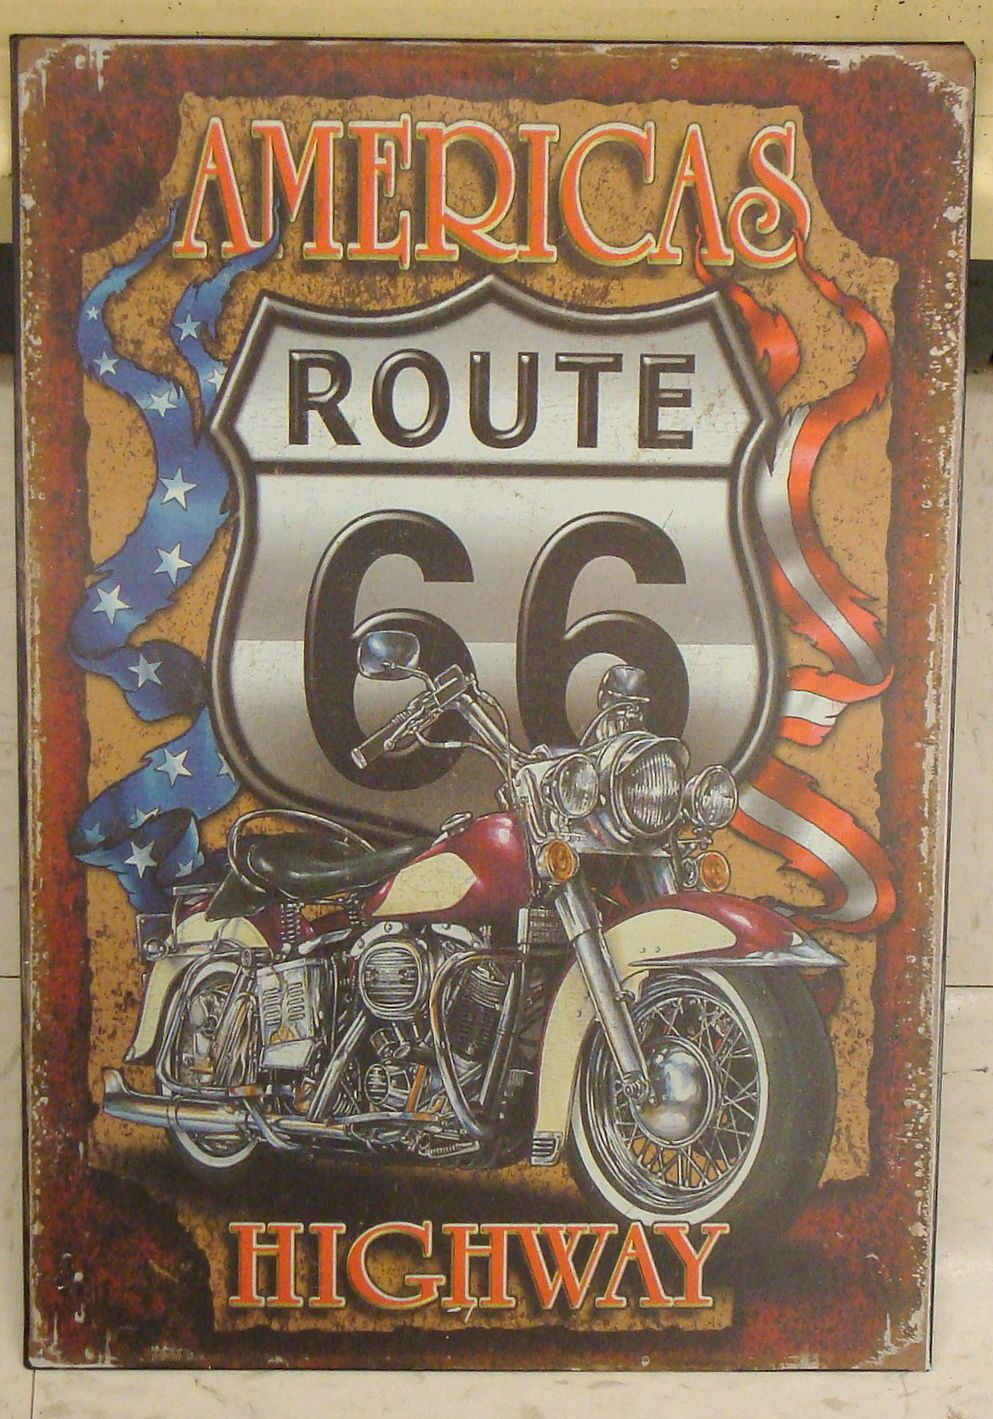 66 Hd 1080x1920 Iphone 6 Plus Wallpaper Free Download: Route 66 The Mother Road